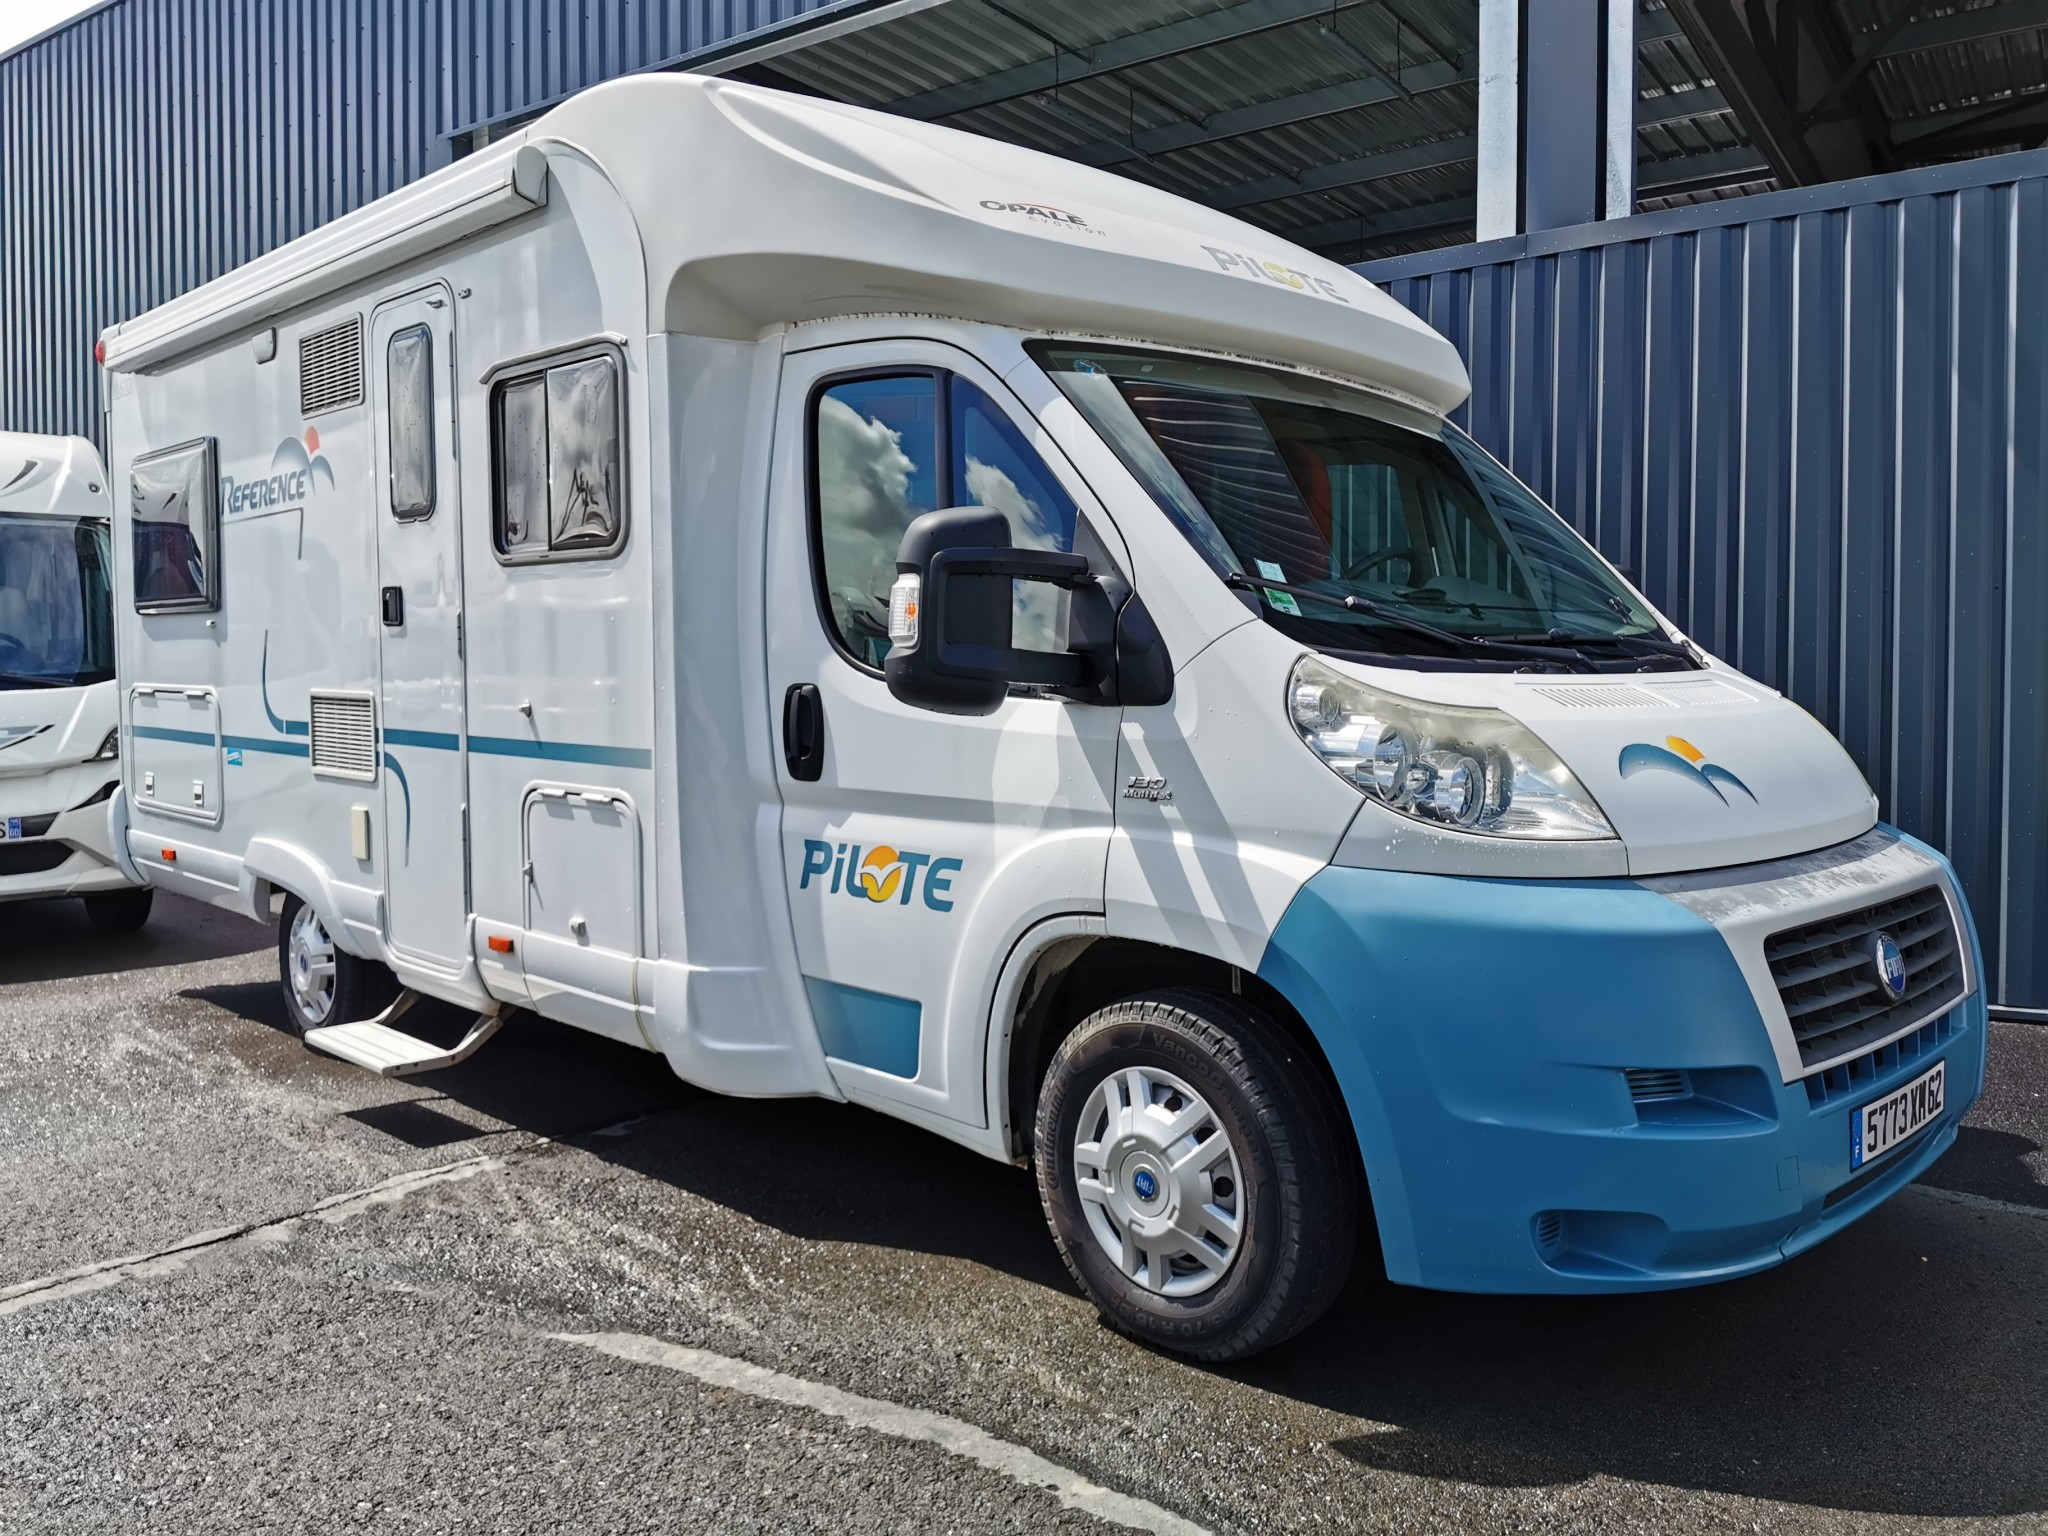 Camping-car PILOTE Reference P670